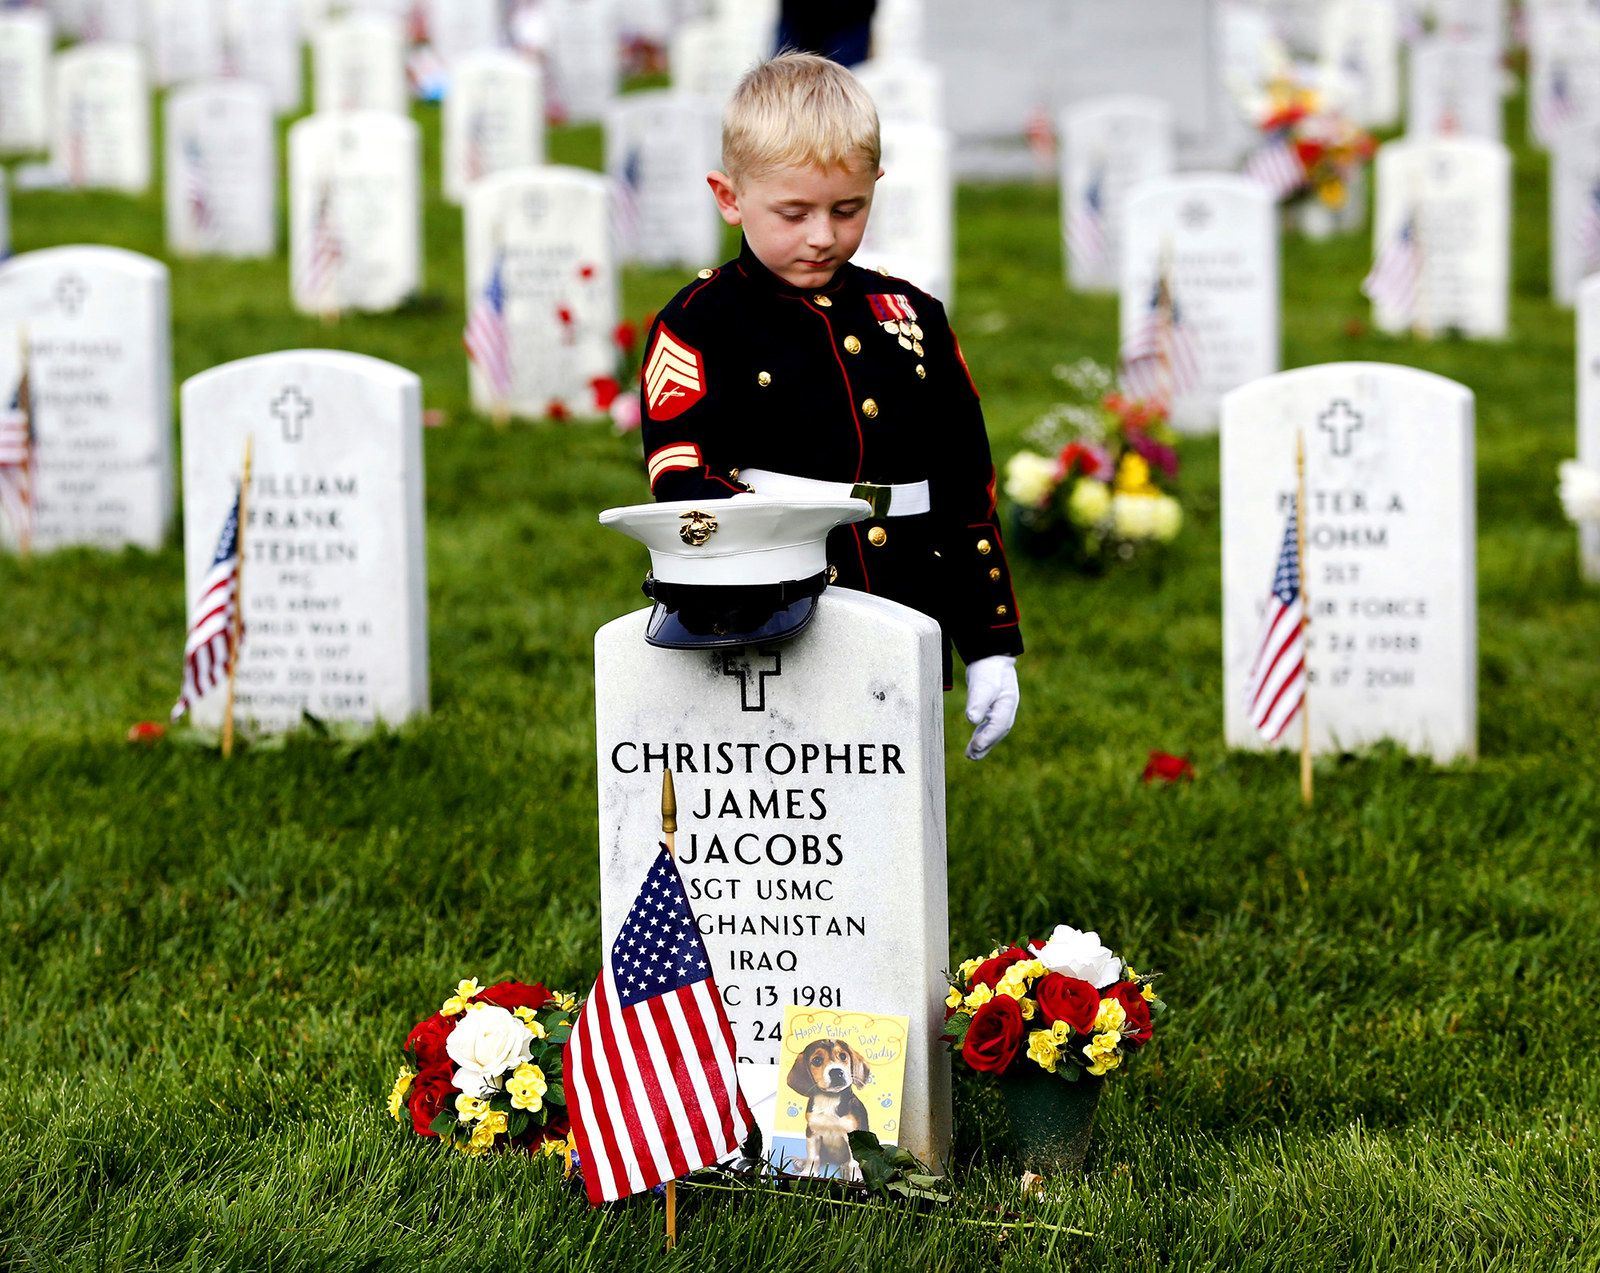 23 Of The Most Powerful Photos Of This Week Memorial Day Military Heroes Military Love